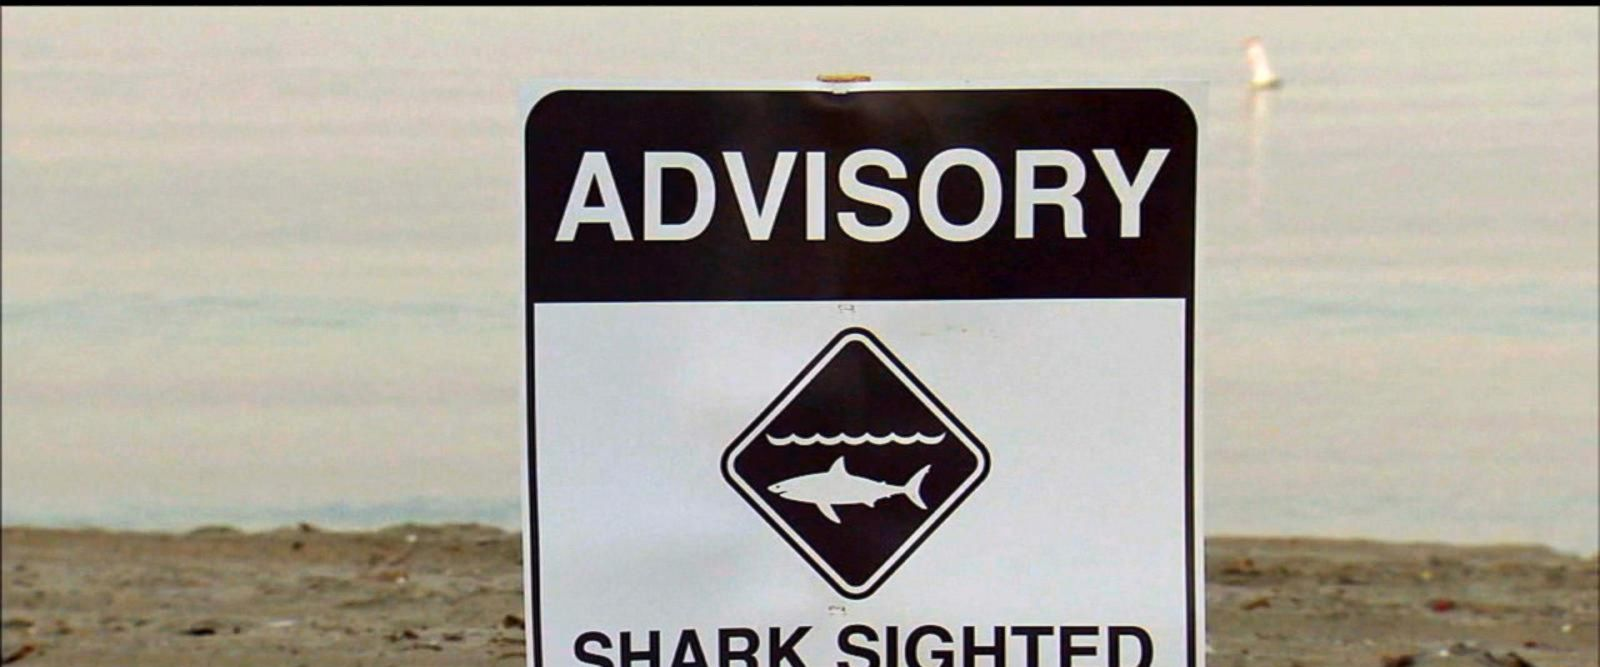 VIDEO: Officials issue shark warning as sightings rise